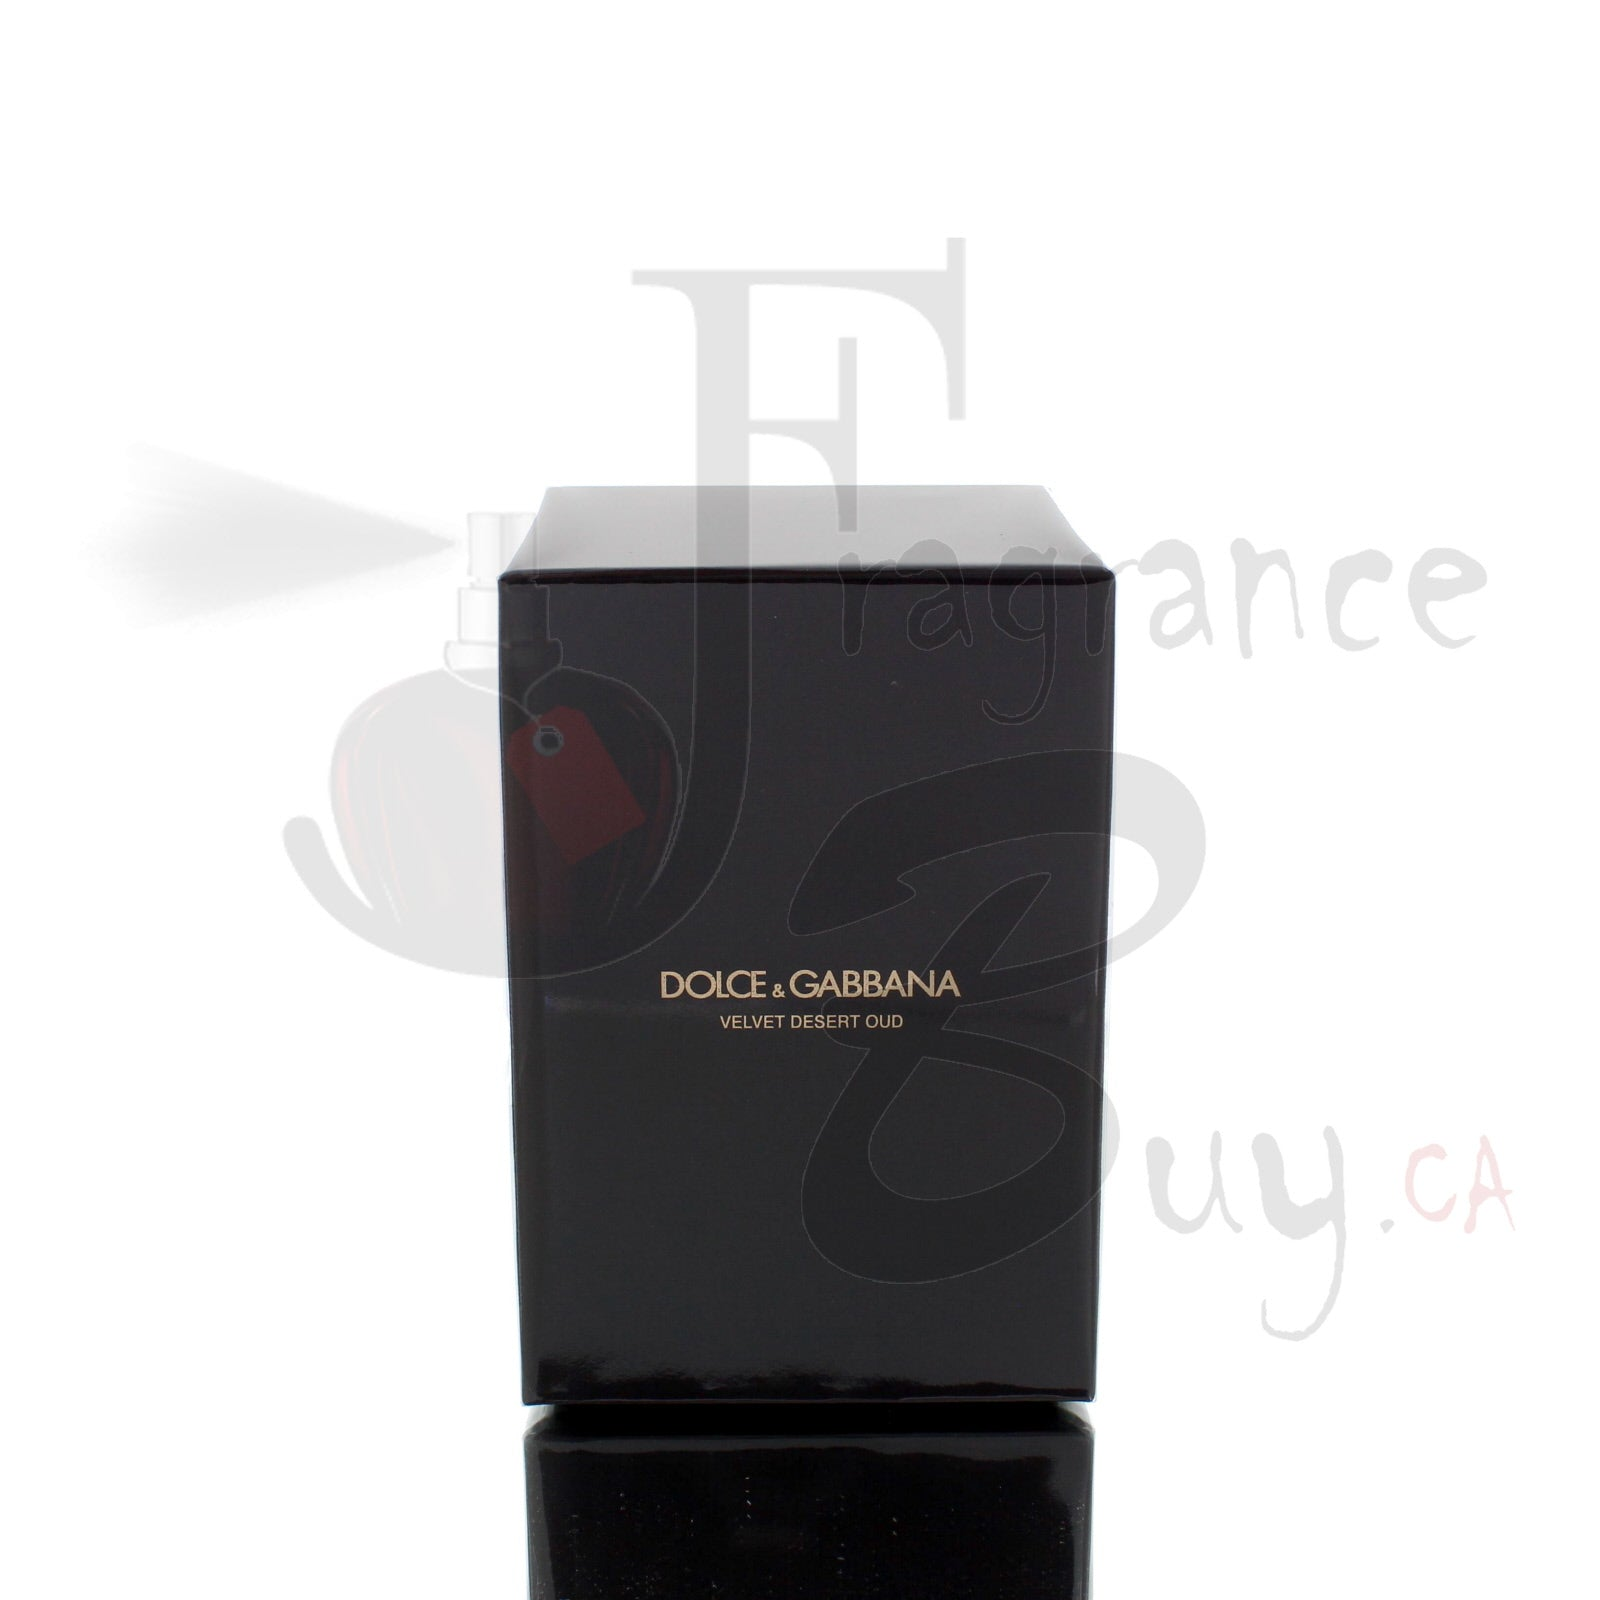 Dolce & Gabbana Velvet Desert Oud For Man/Woman